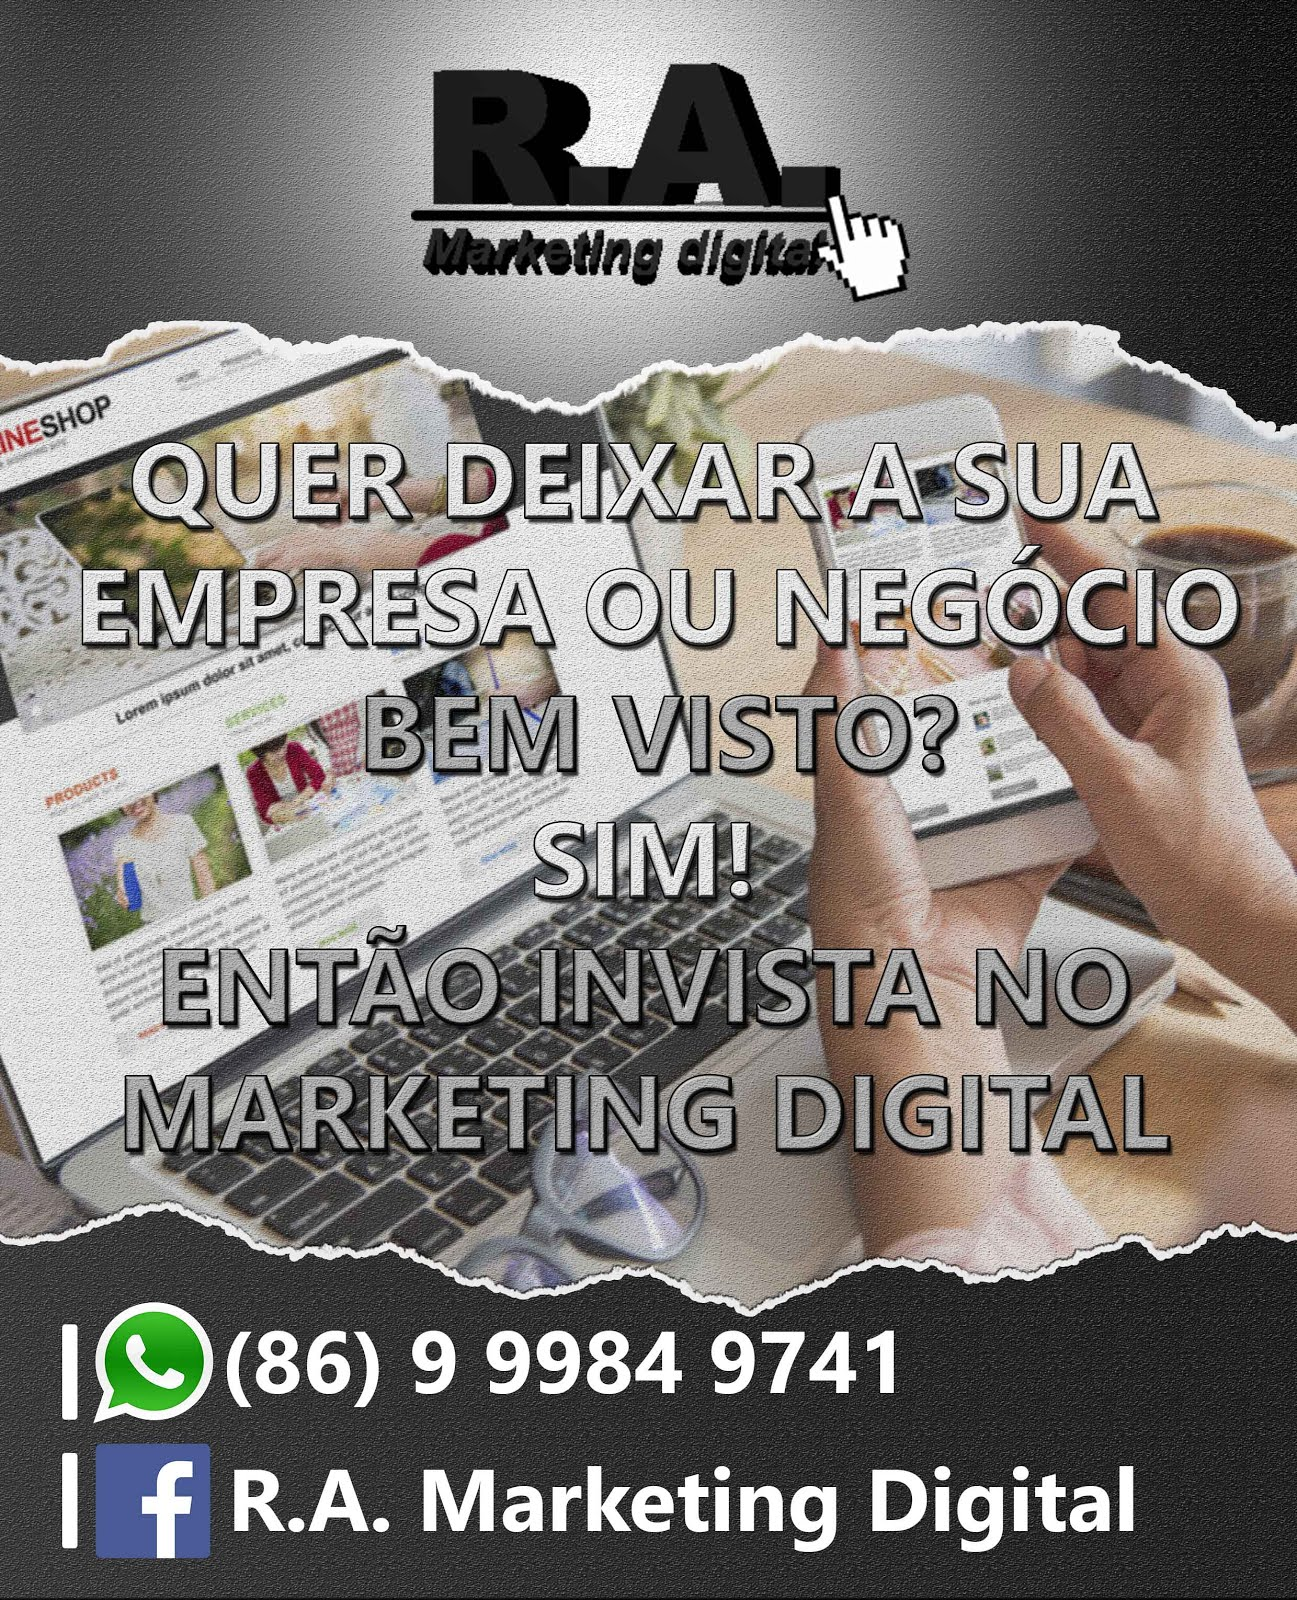 R.A. Marketing Digital